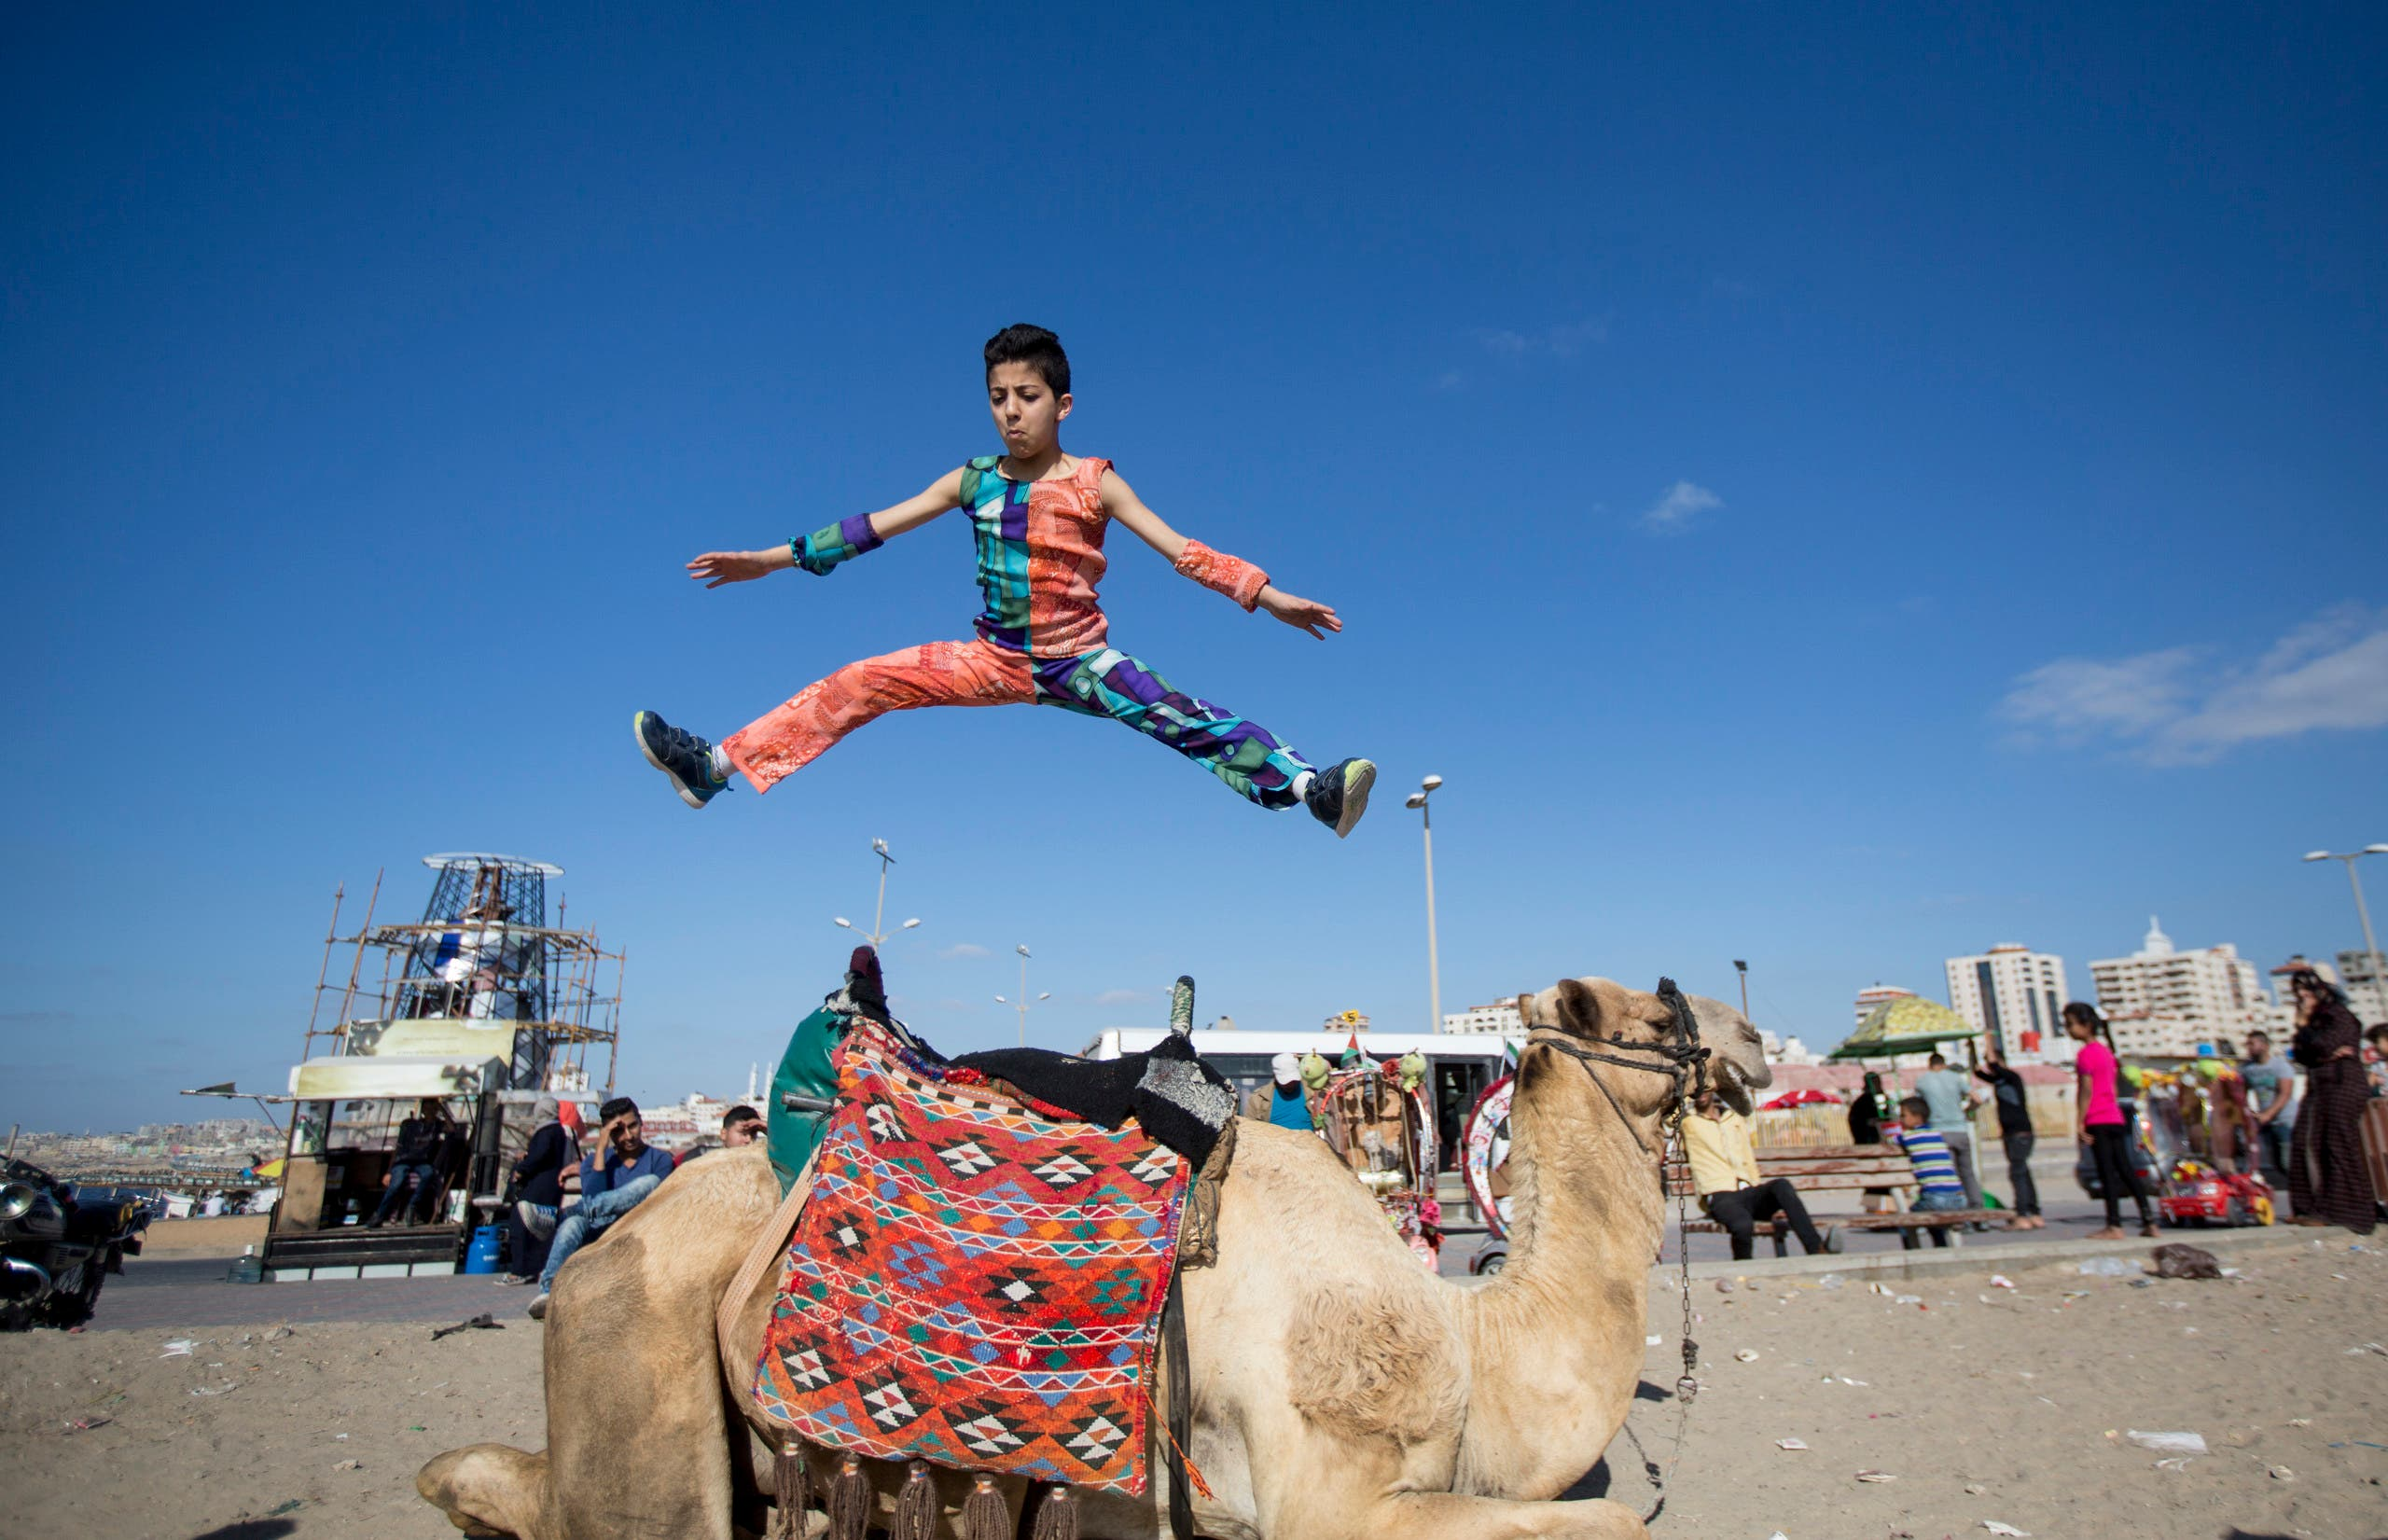 This file photo taken on April 28, 2016 shows then-twelve-year-old Palestinian teenager Mohammed al-Sheikh showing off his skills in Gaza city. AFP